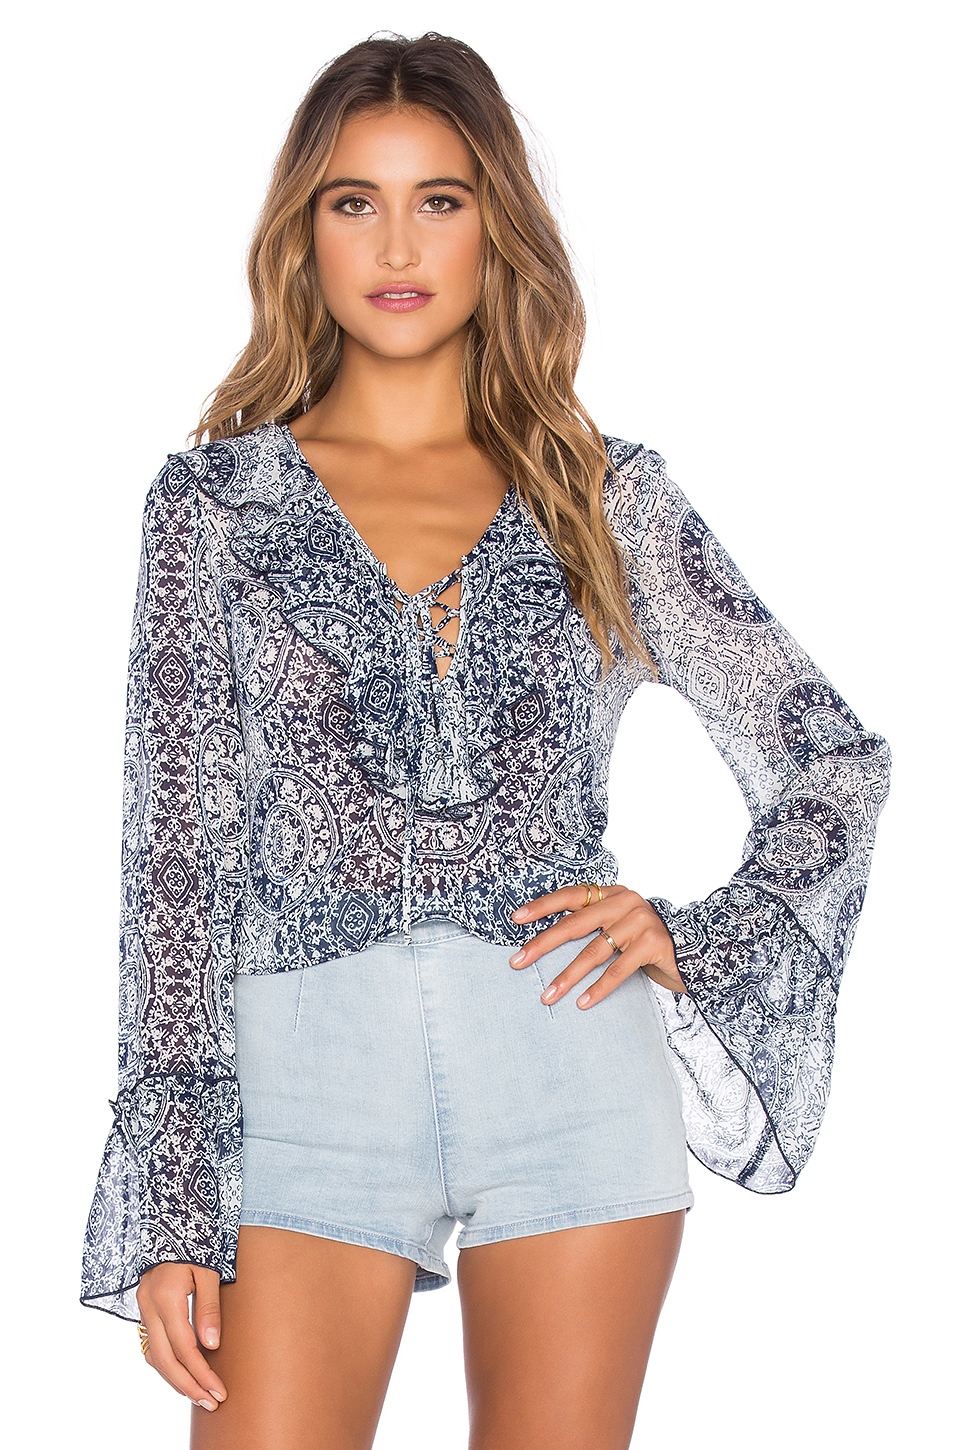 dd88b7e548ad Lyst - Band Of Gypsies Printed Ruffle Front Blouse in White